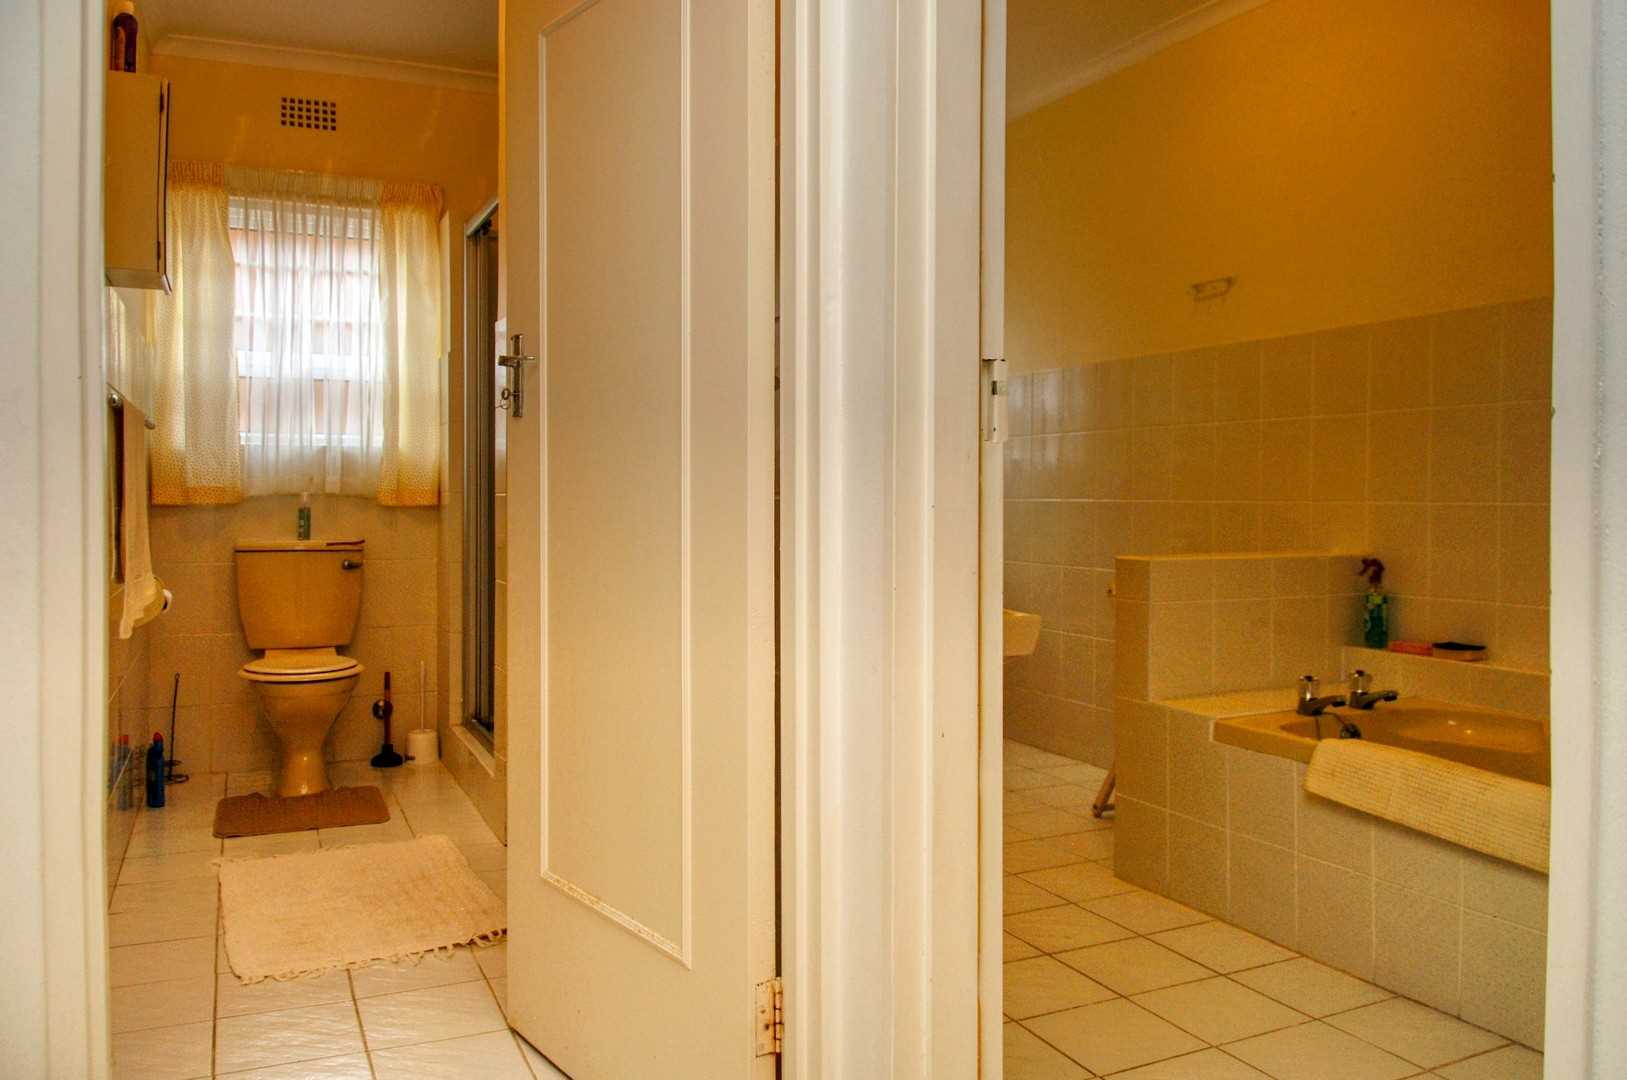 Back to back bathrooms, lower level